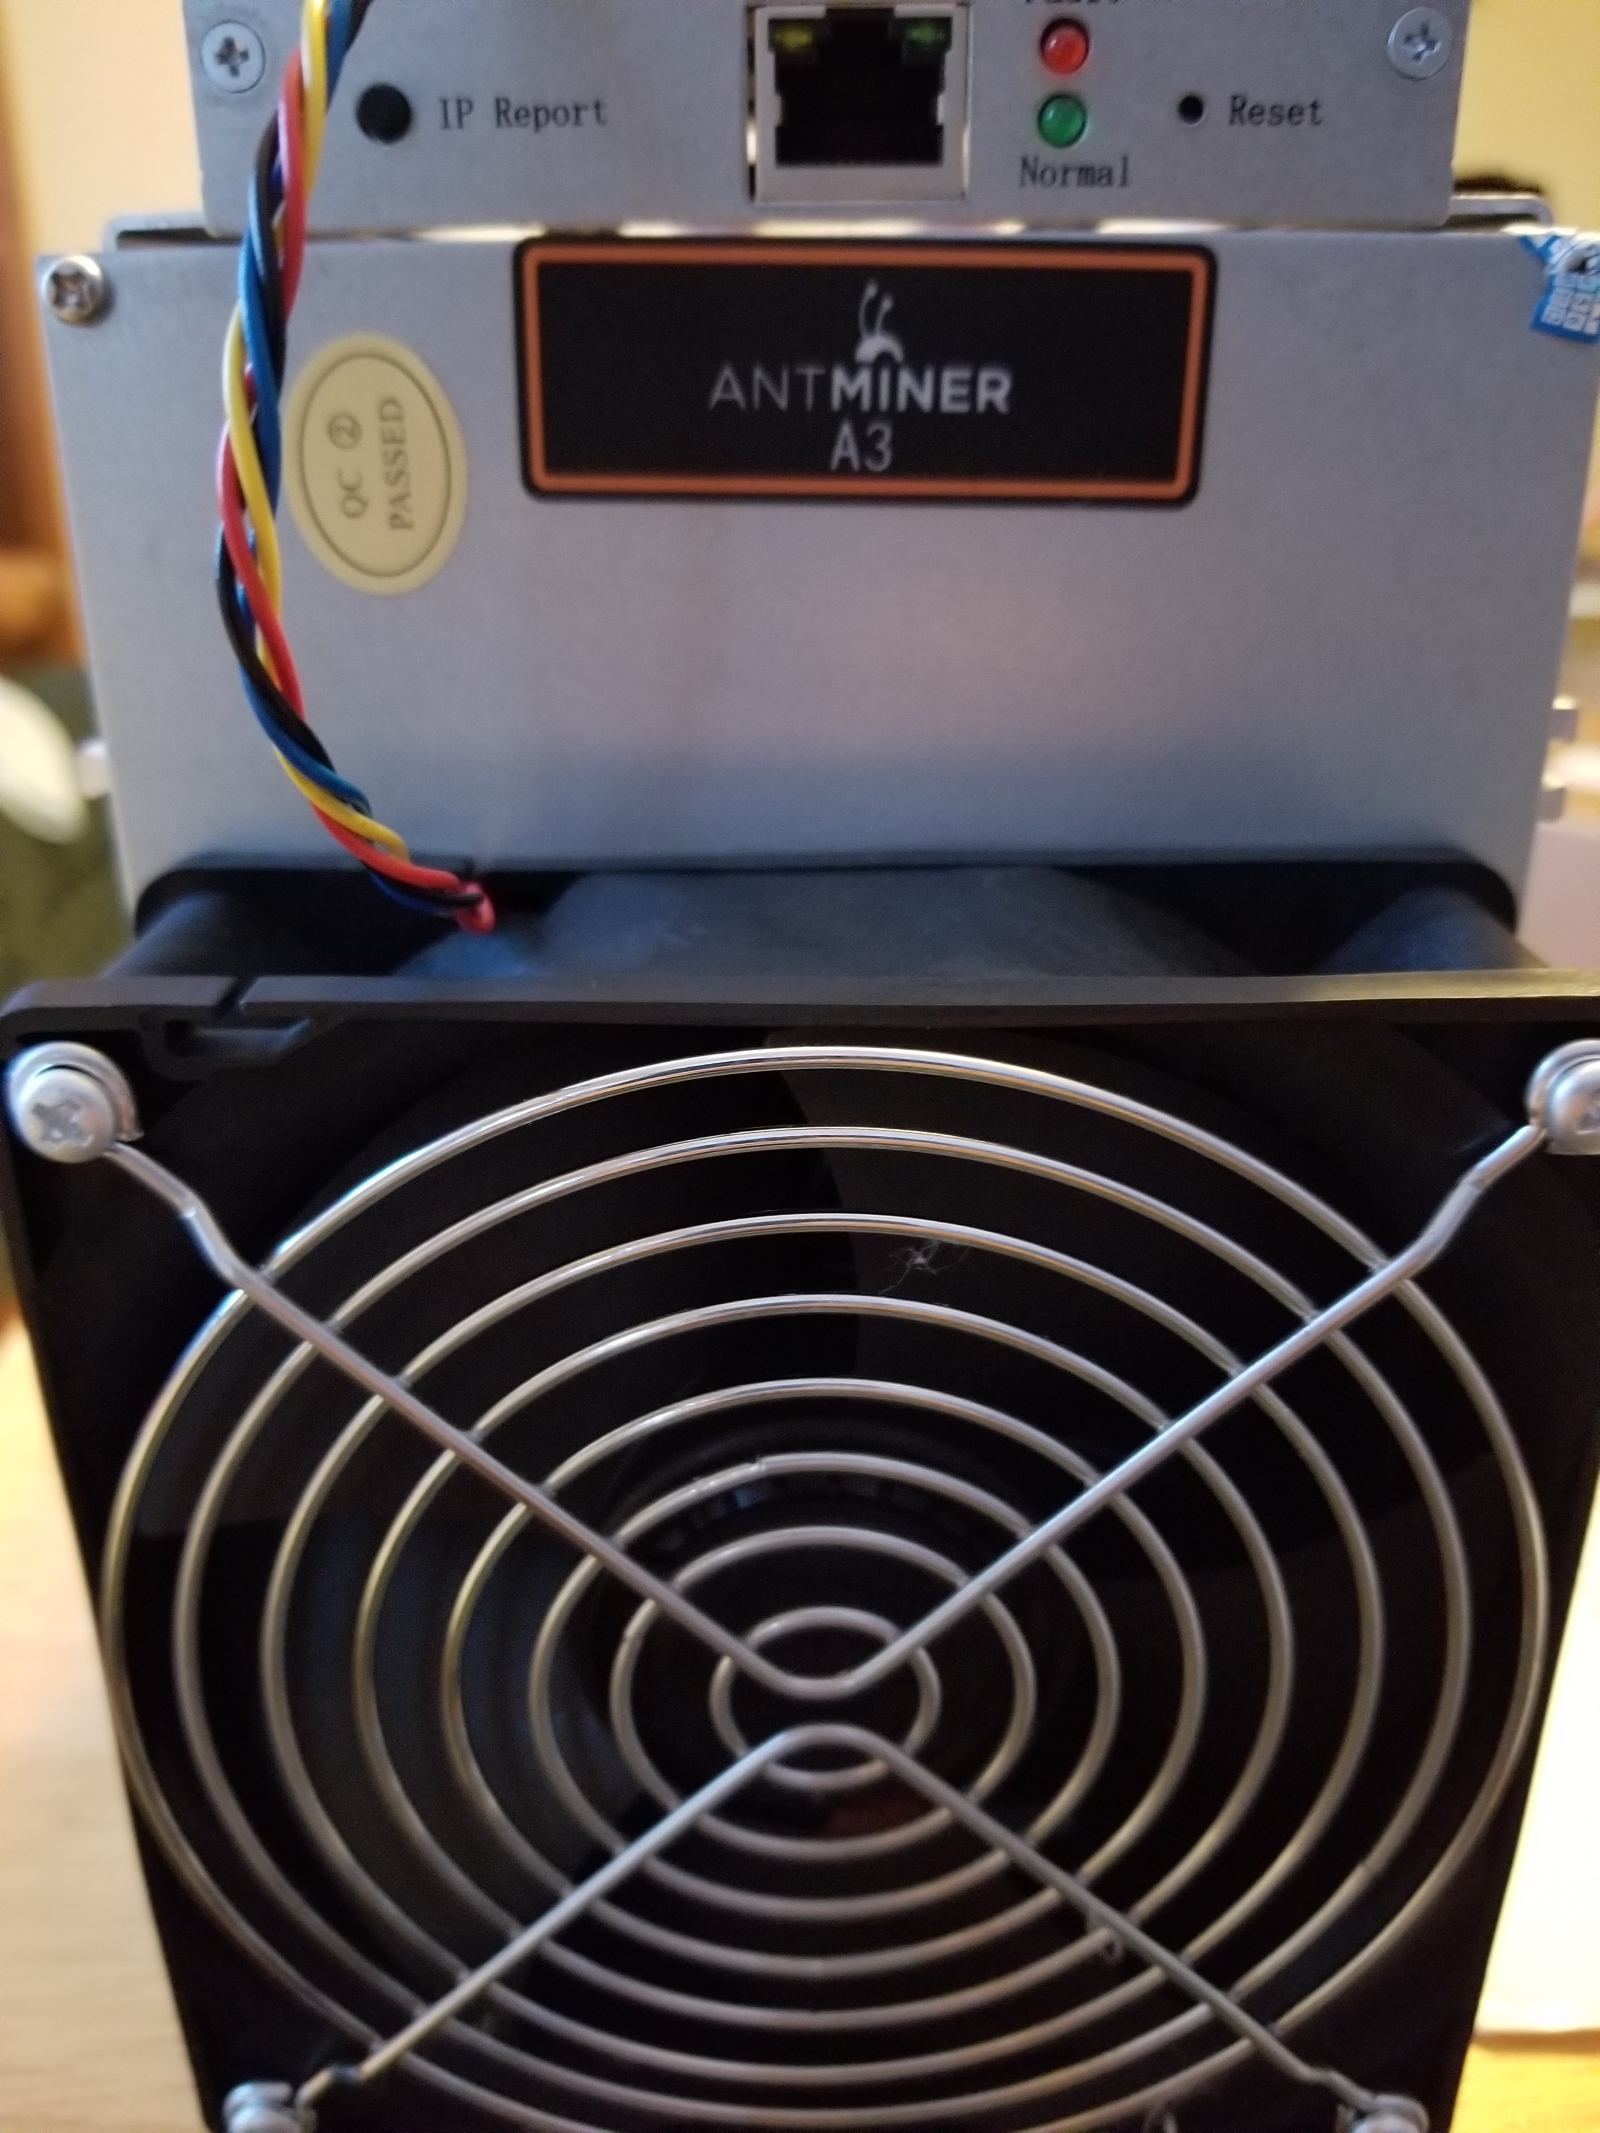 The Antminer V9 Is a Good Lower-Cost Miner - If You Have